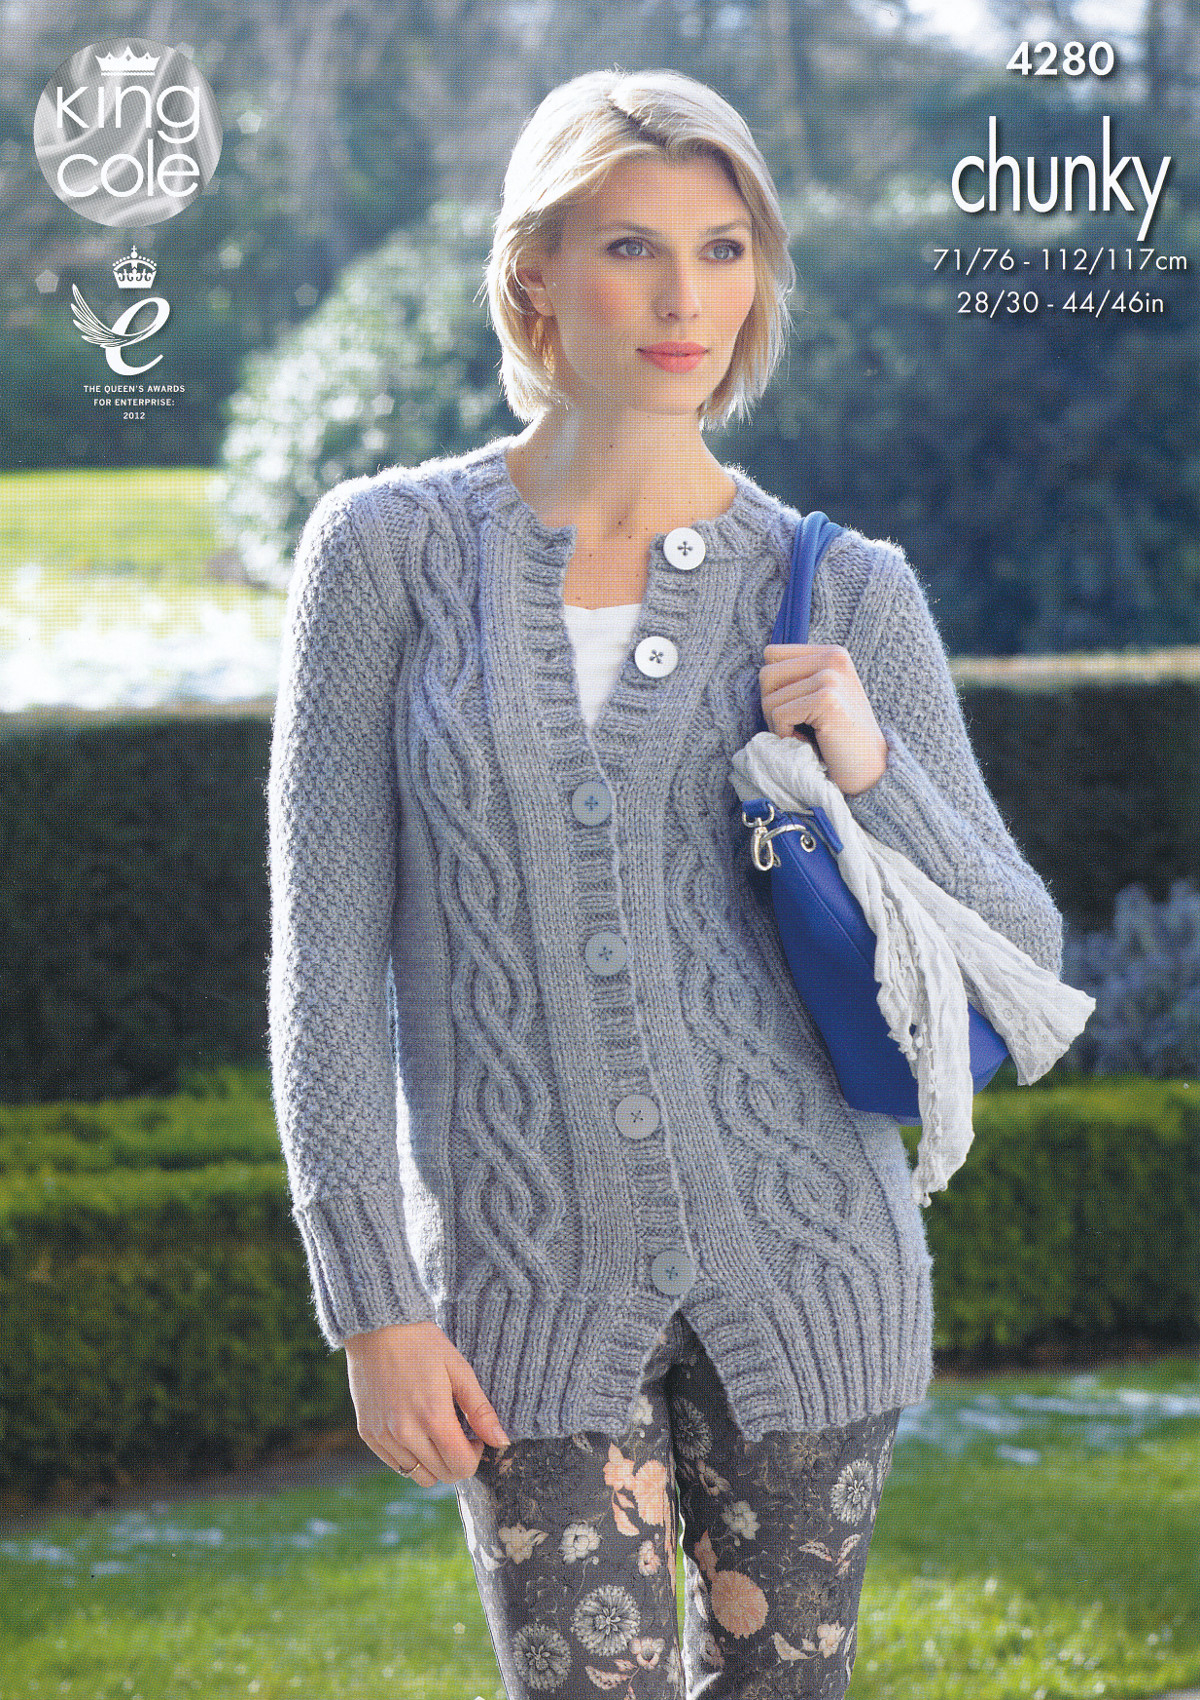 Knitted Jacket Patterns Details About King Cole Womens Chunky Knitting Pattern Ladies Short Long Sleeved Cardigan 4280